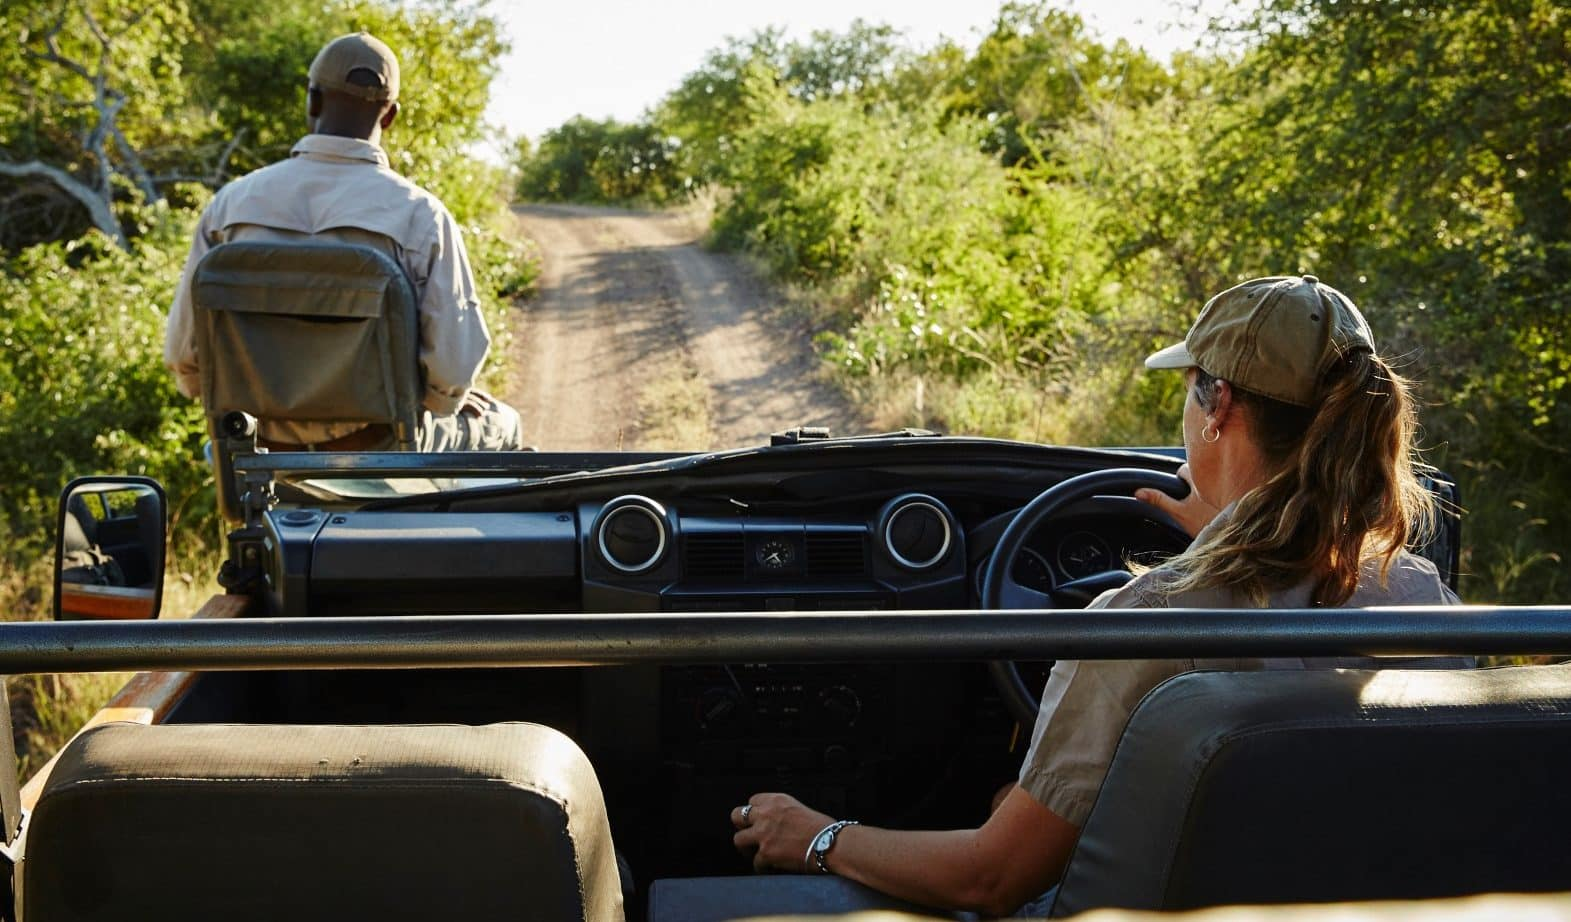 Guide and tracker on Singita open vehicle